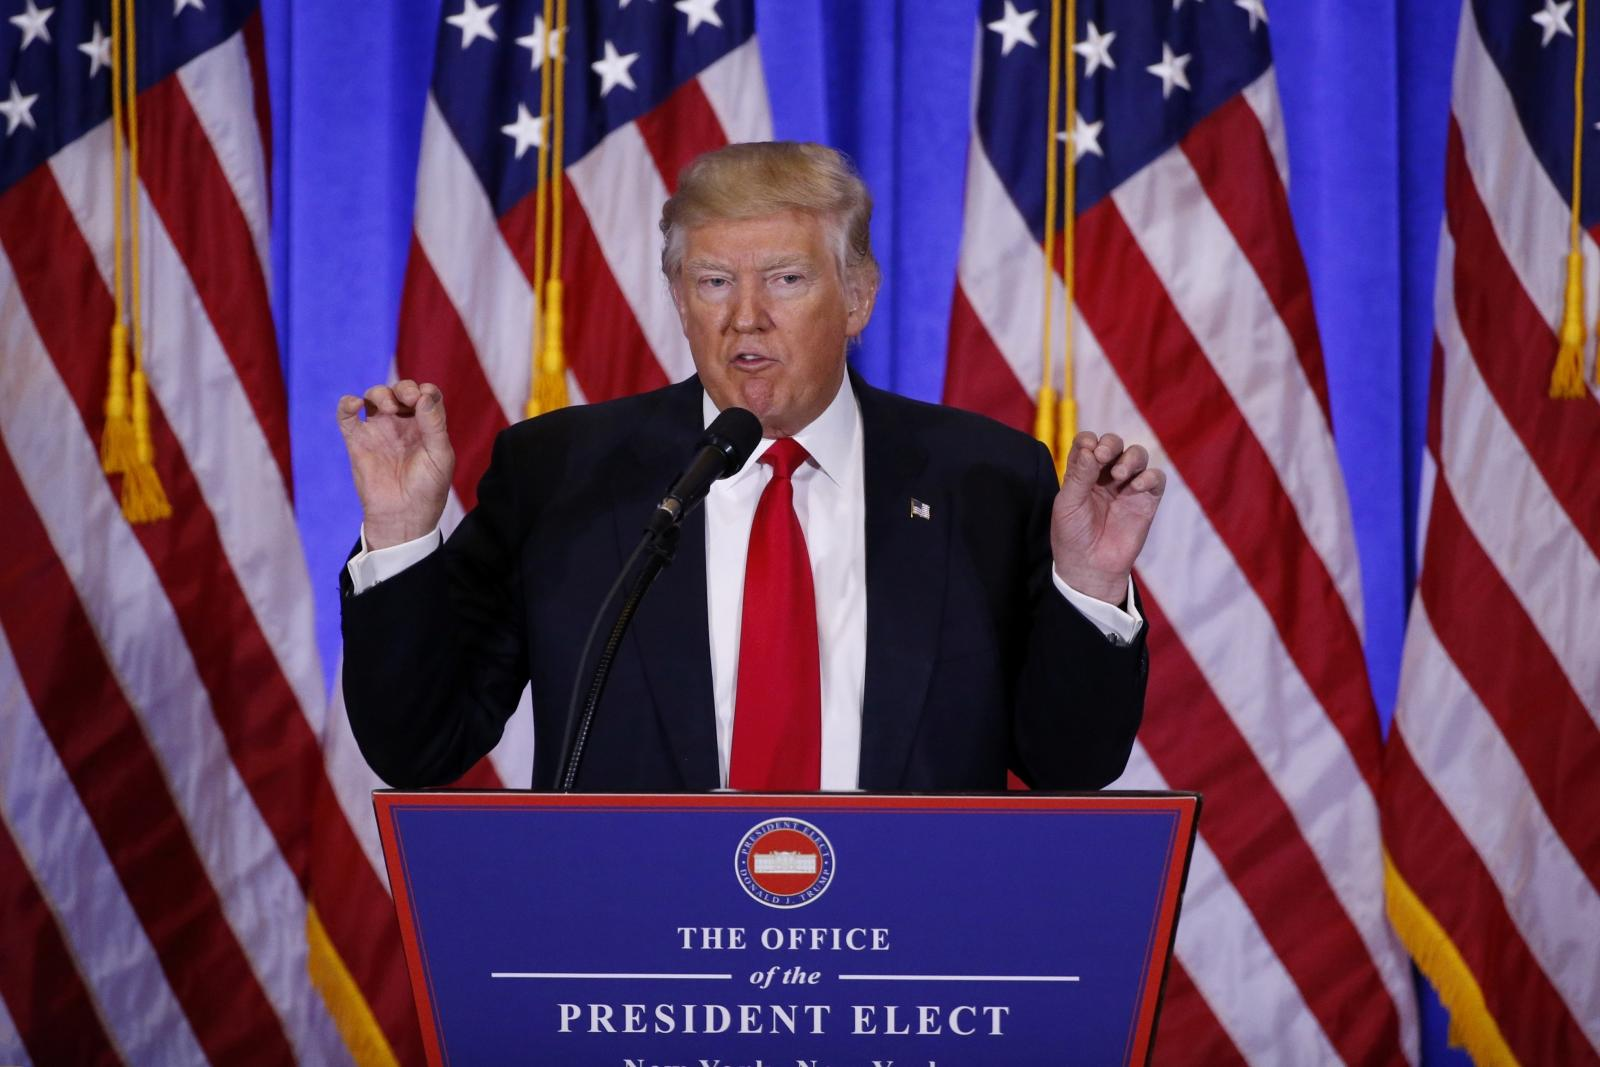 Most Asian markets decline following Donald Trump's failure to provide clarity on economic policies